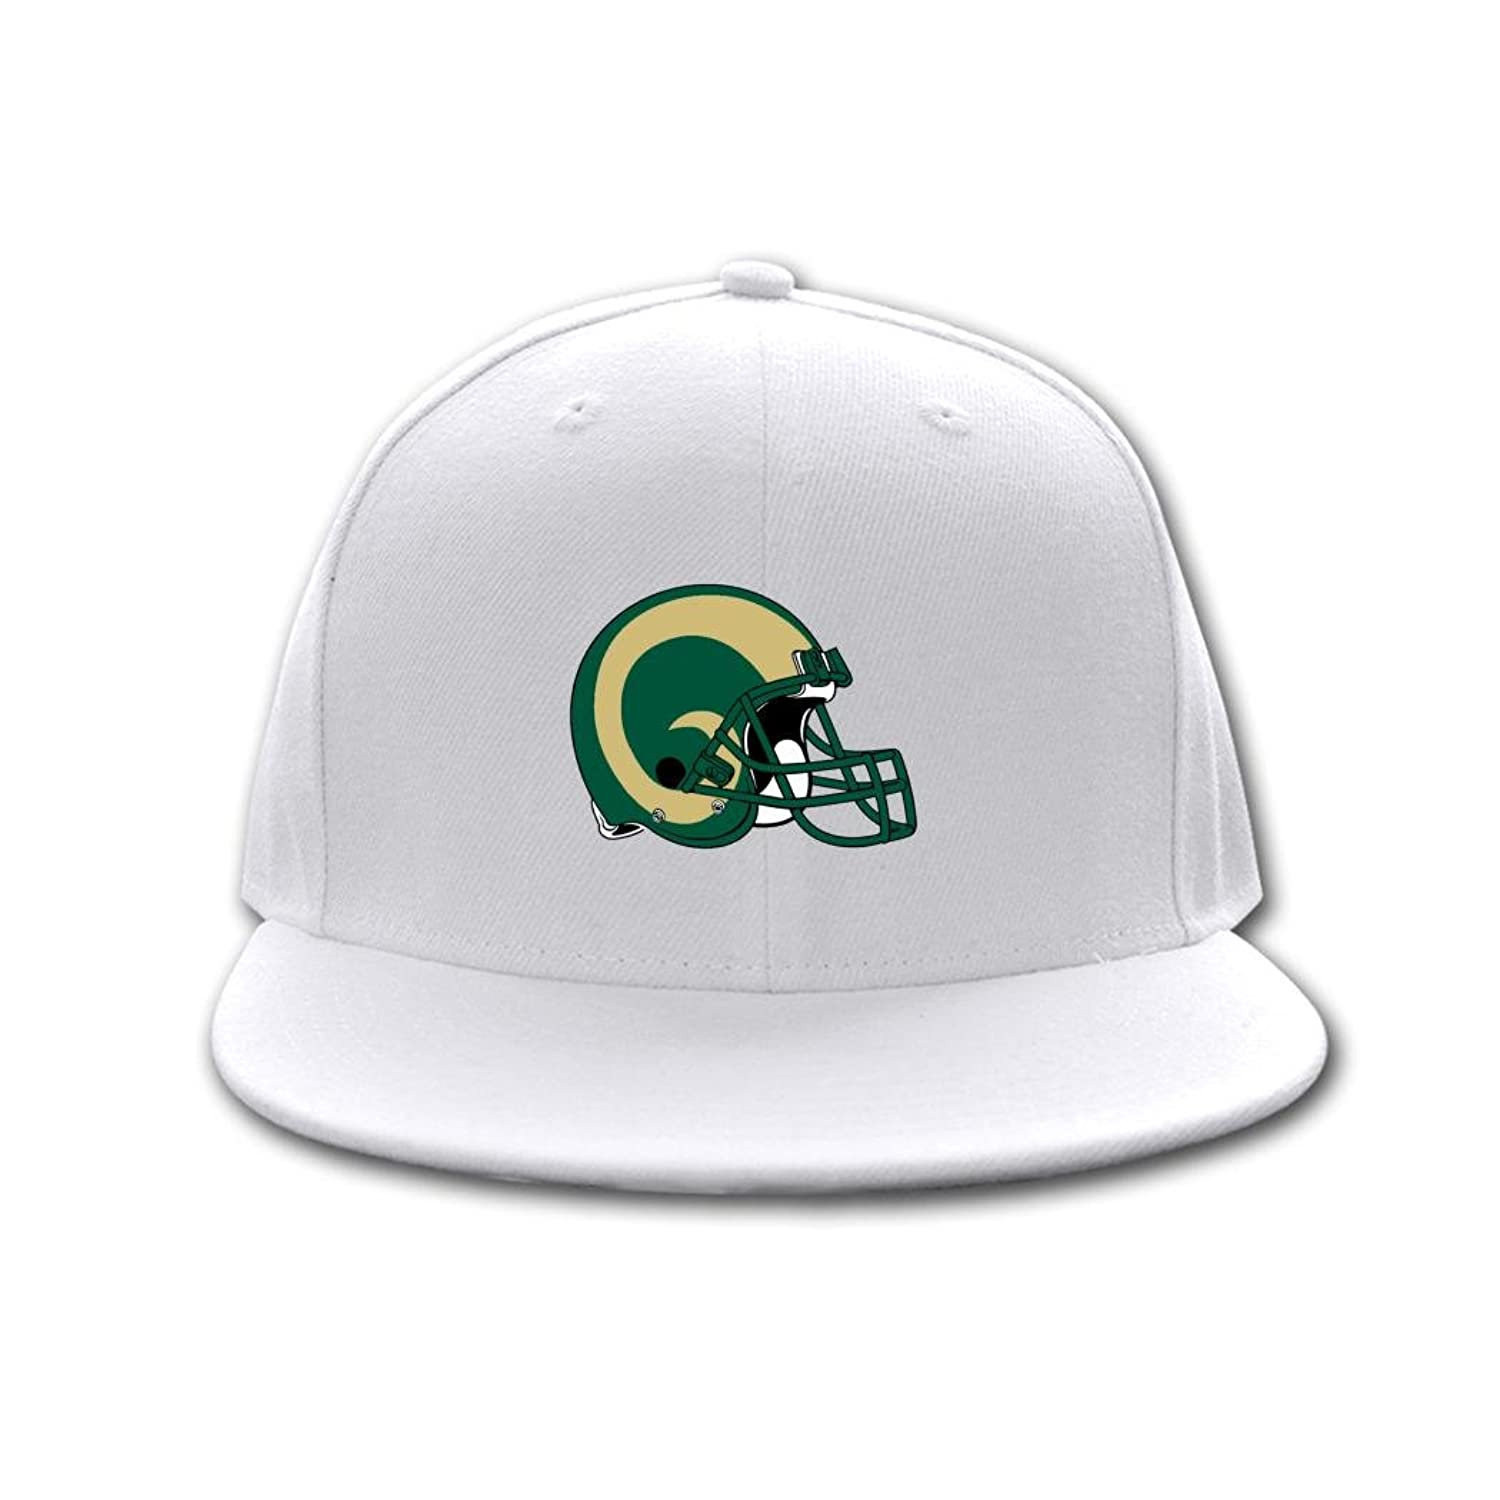 Popular Sun Hat NACC Logo Colorado State Rams 100% cotton Hip-hop cap for mens womens